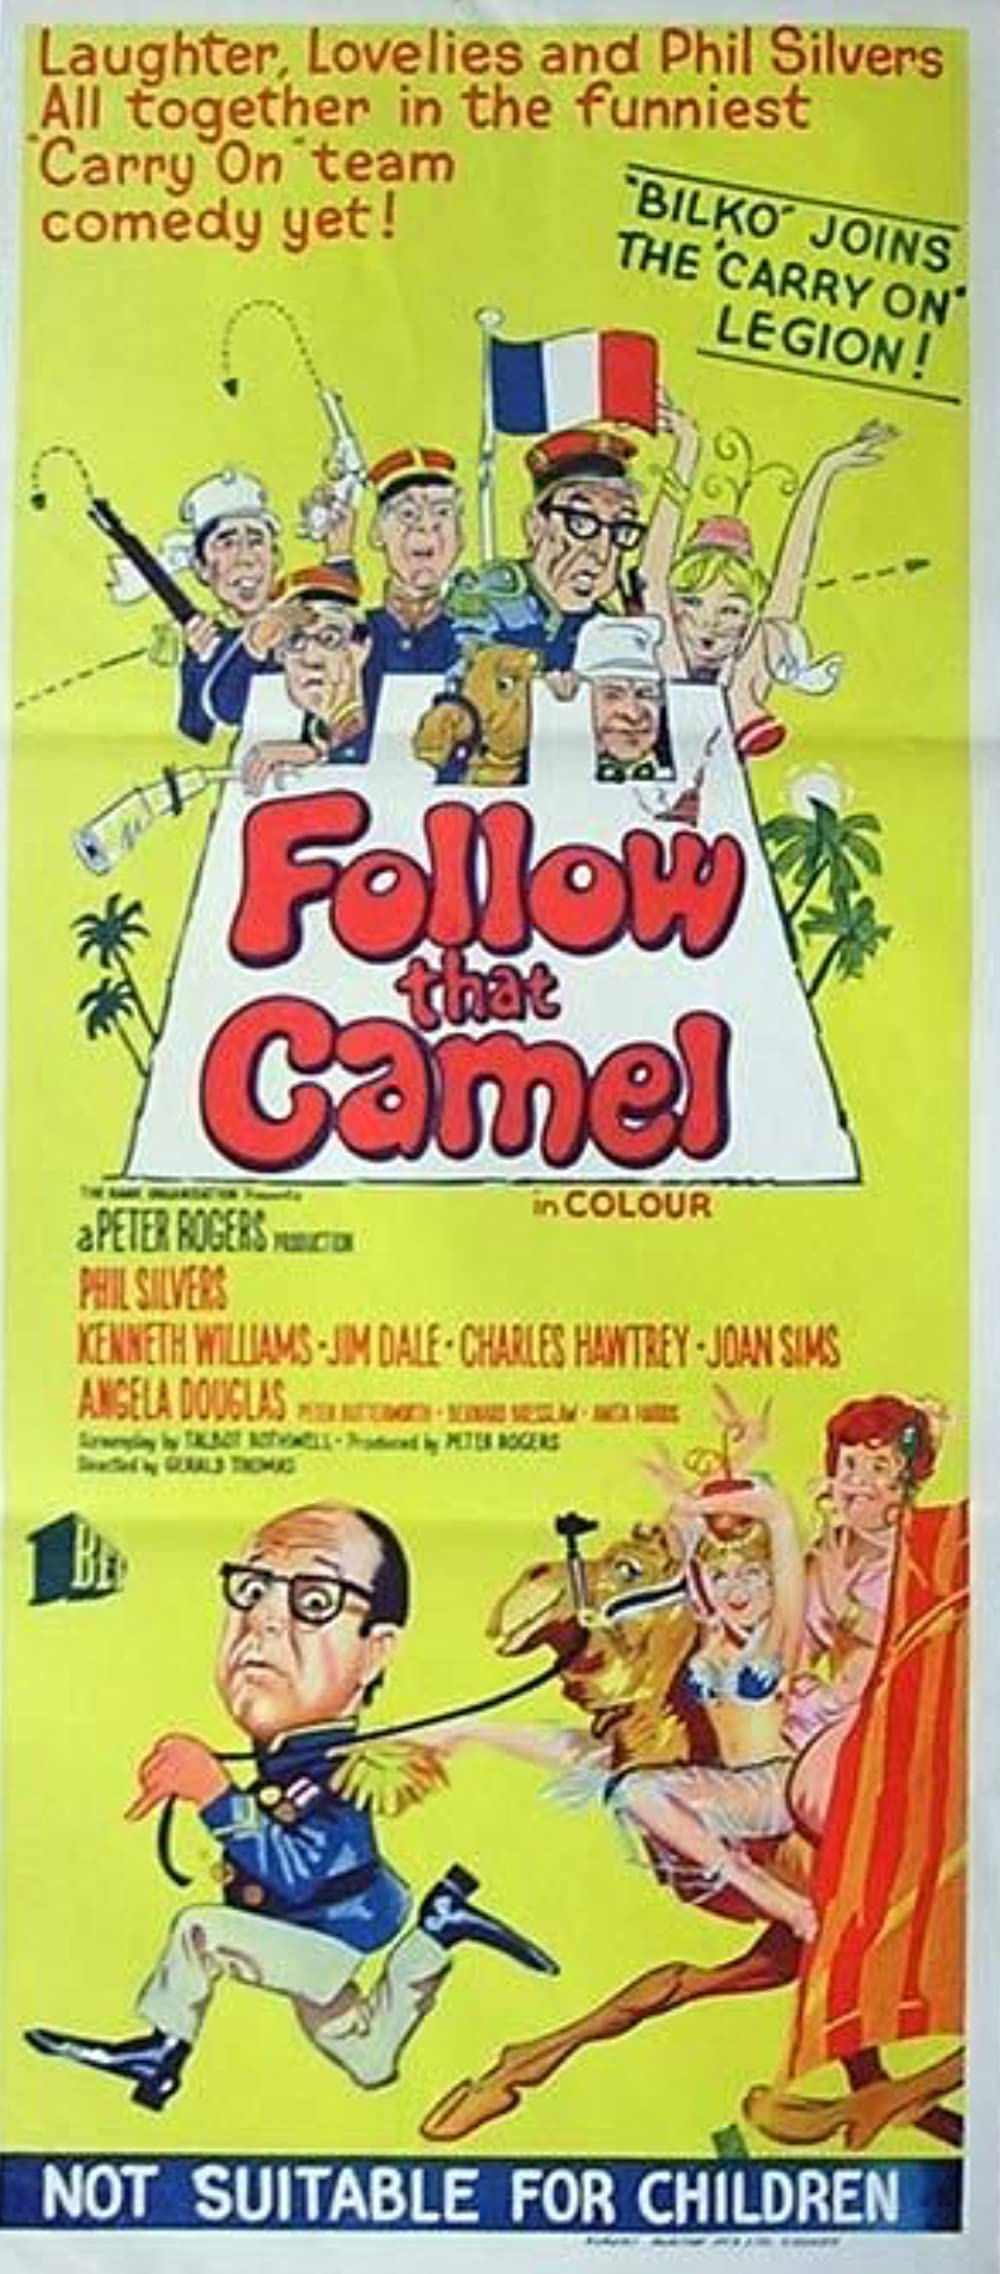 Ist ja irre - In der Wüste fließt kein Wasser: Directed by Gerald Thomas. With Phil Silvers, Kenneth Williams, Jim Dale, Charles Hawtrey. A bogus legionnaire proves his mettle during an Arab attack.